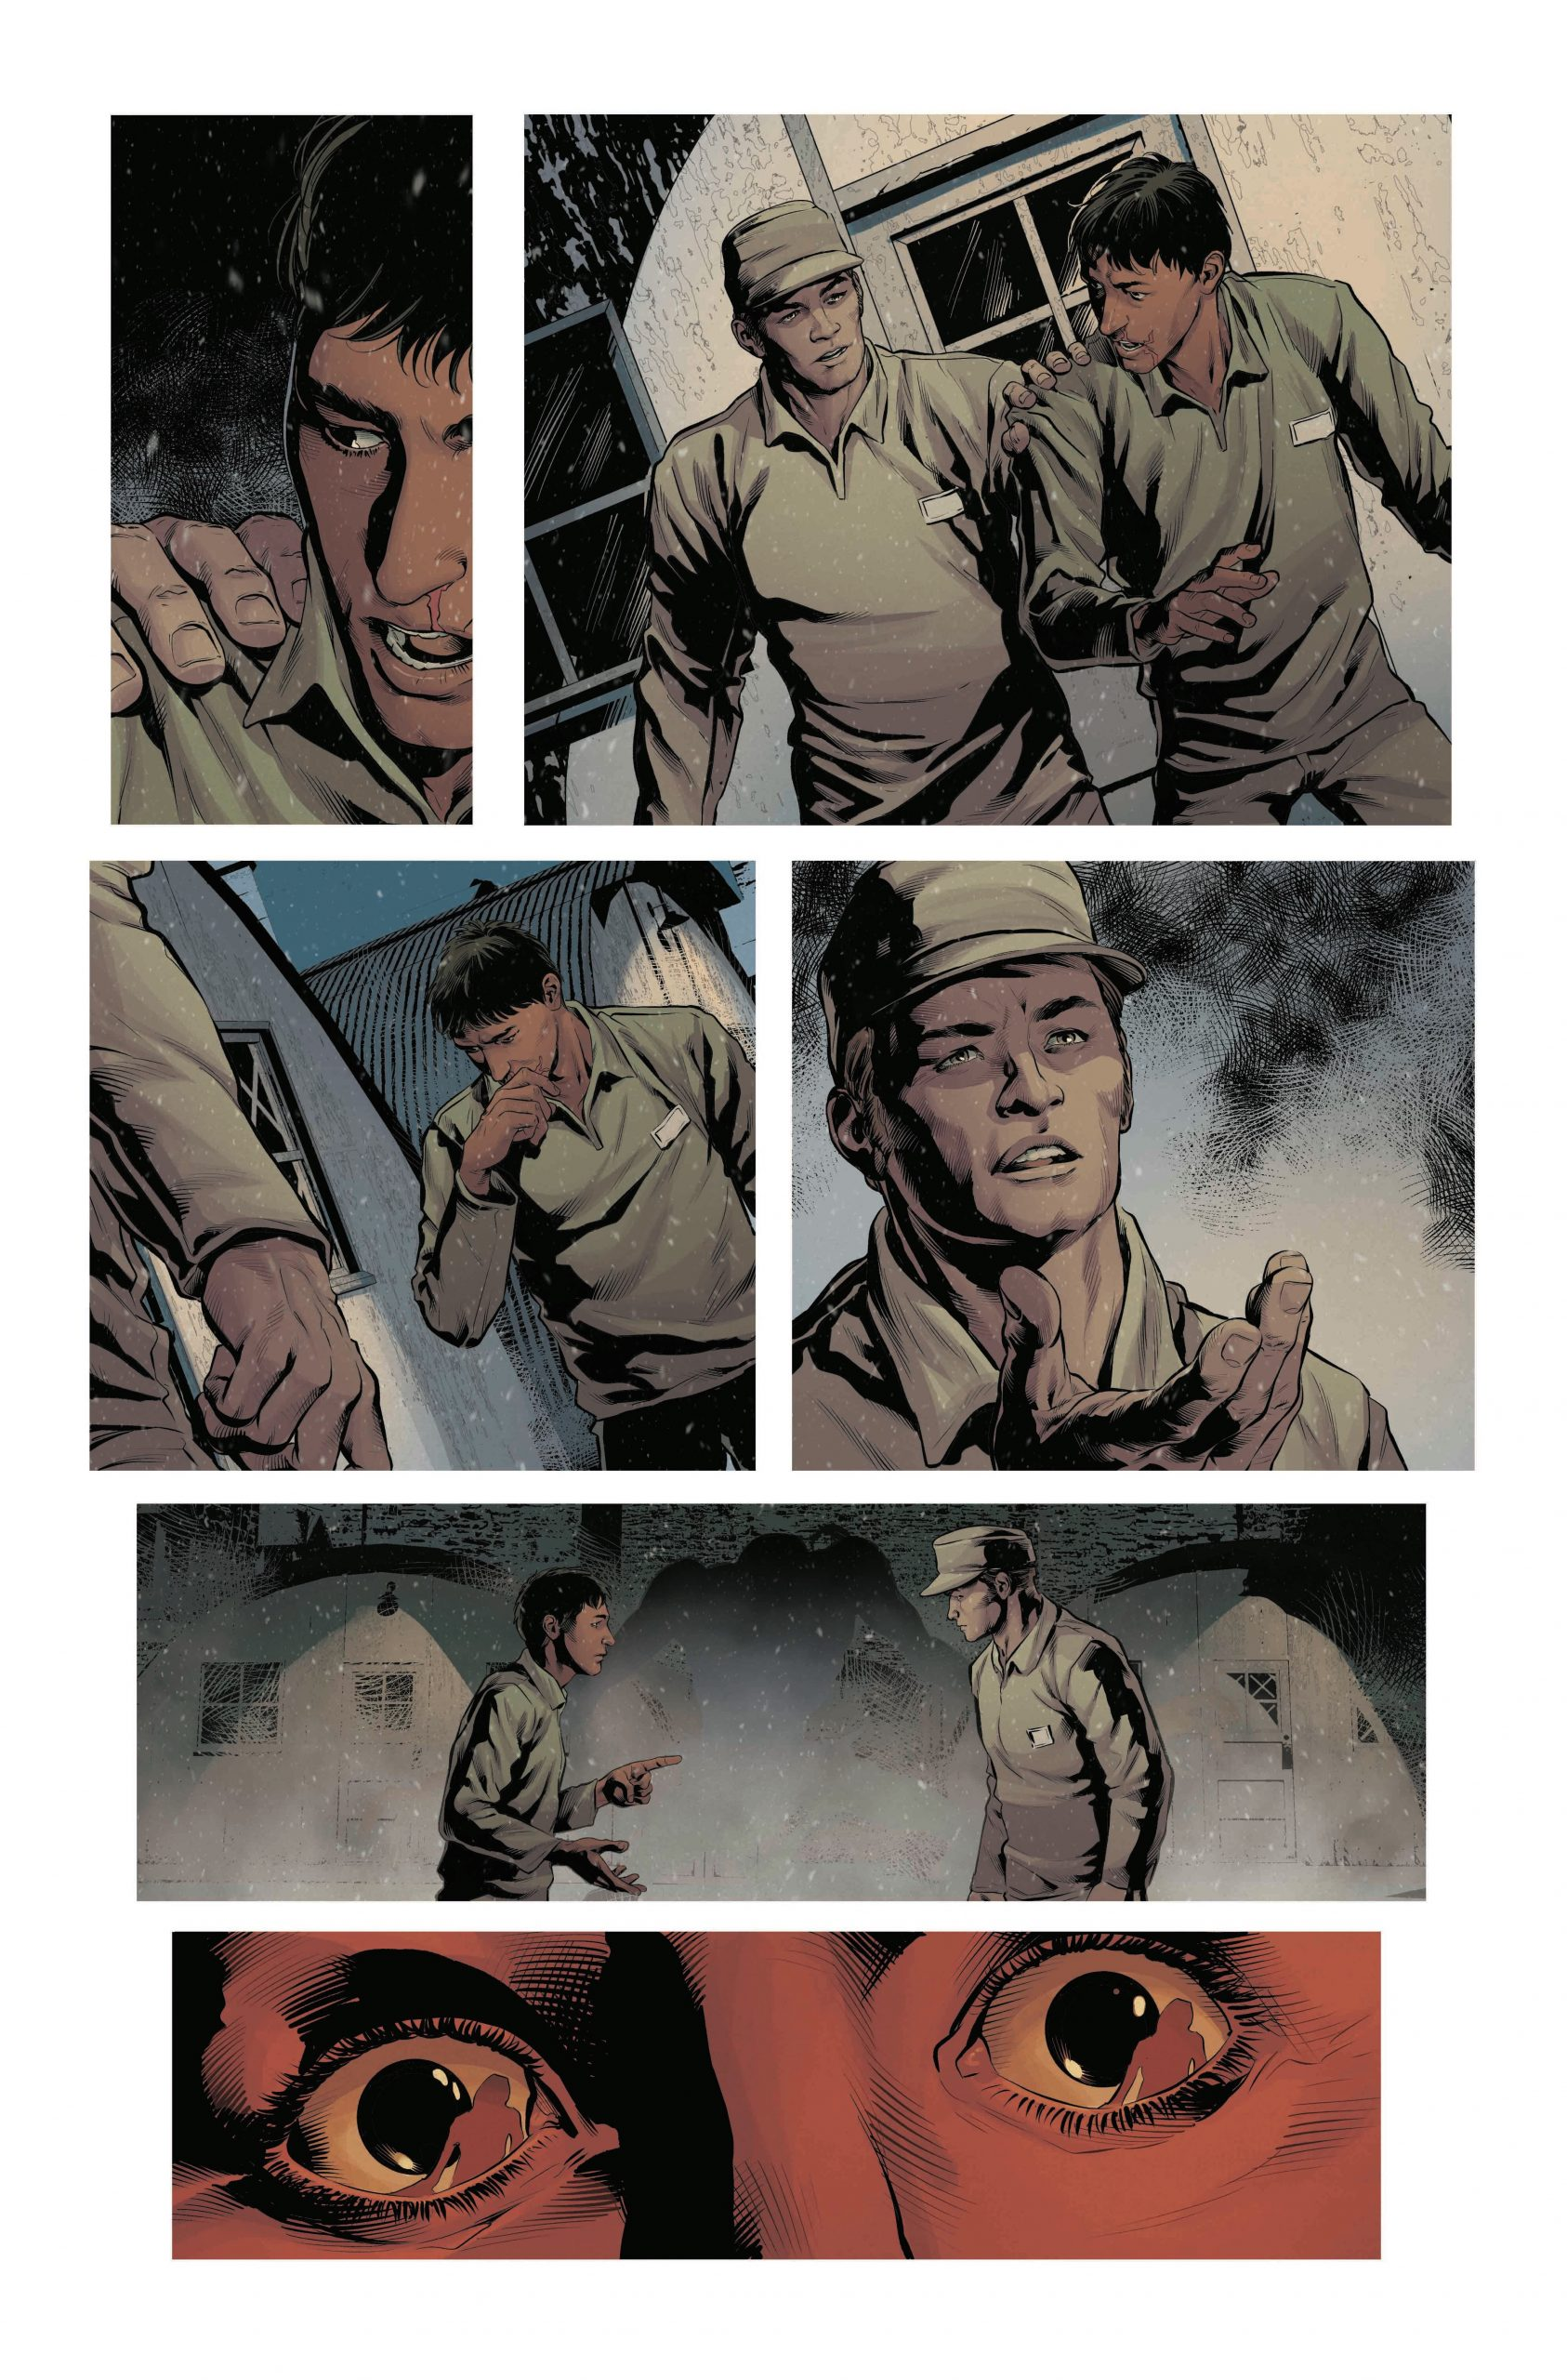 , Rob Williams Creates Epic WWII Horror Series Filled with Nazis and Vampires, Called OUT, The Indie Comix Dispatch